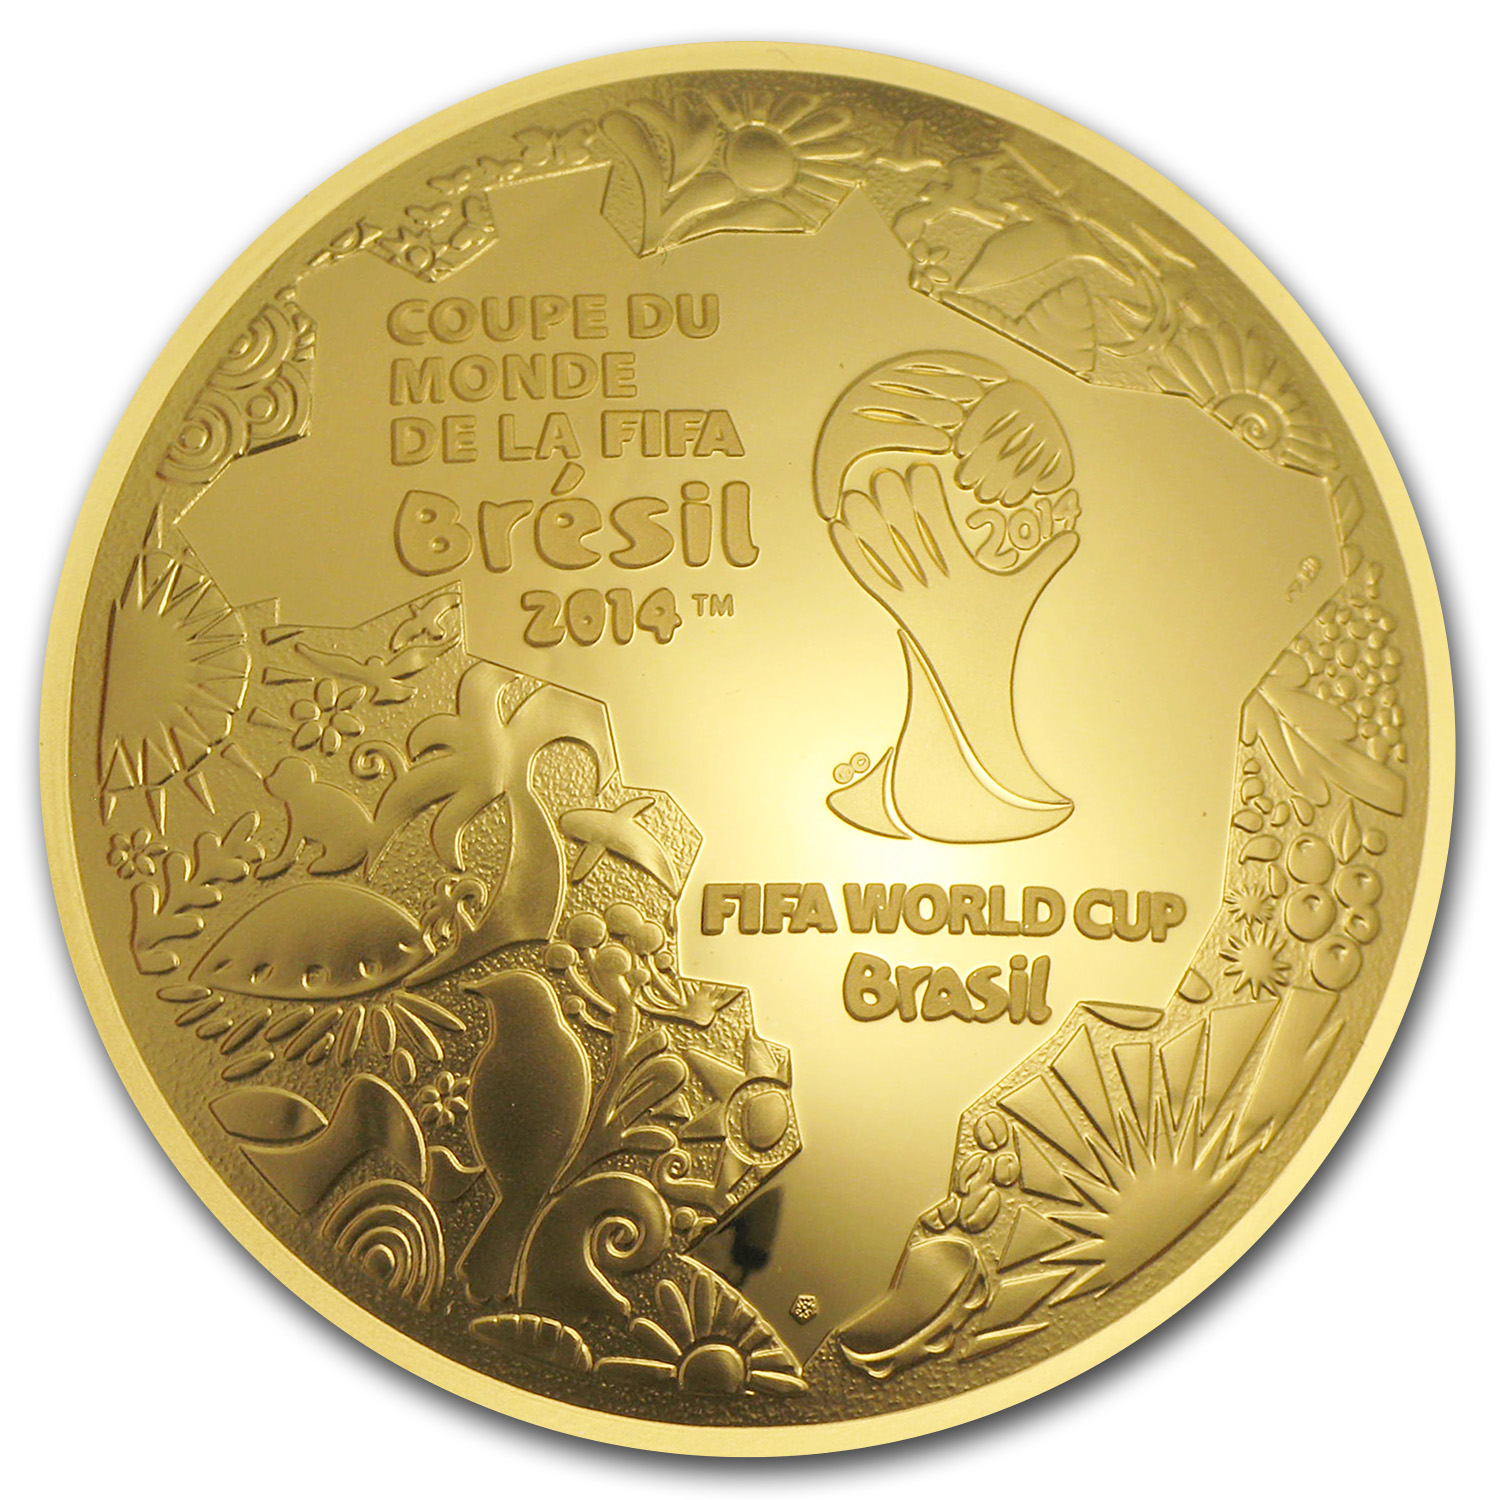 2014 France 1 oz Proof Gold €200 FIFA World Cup